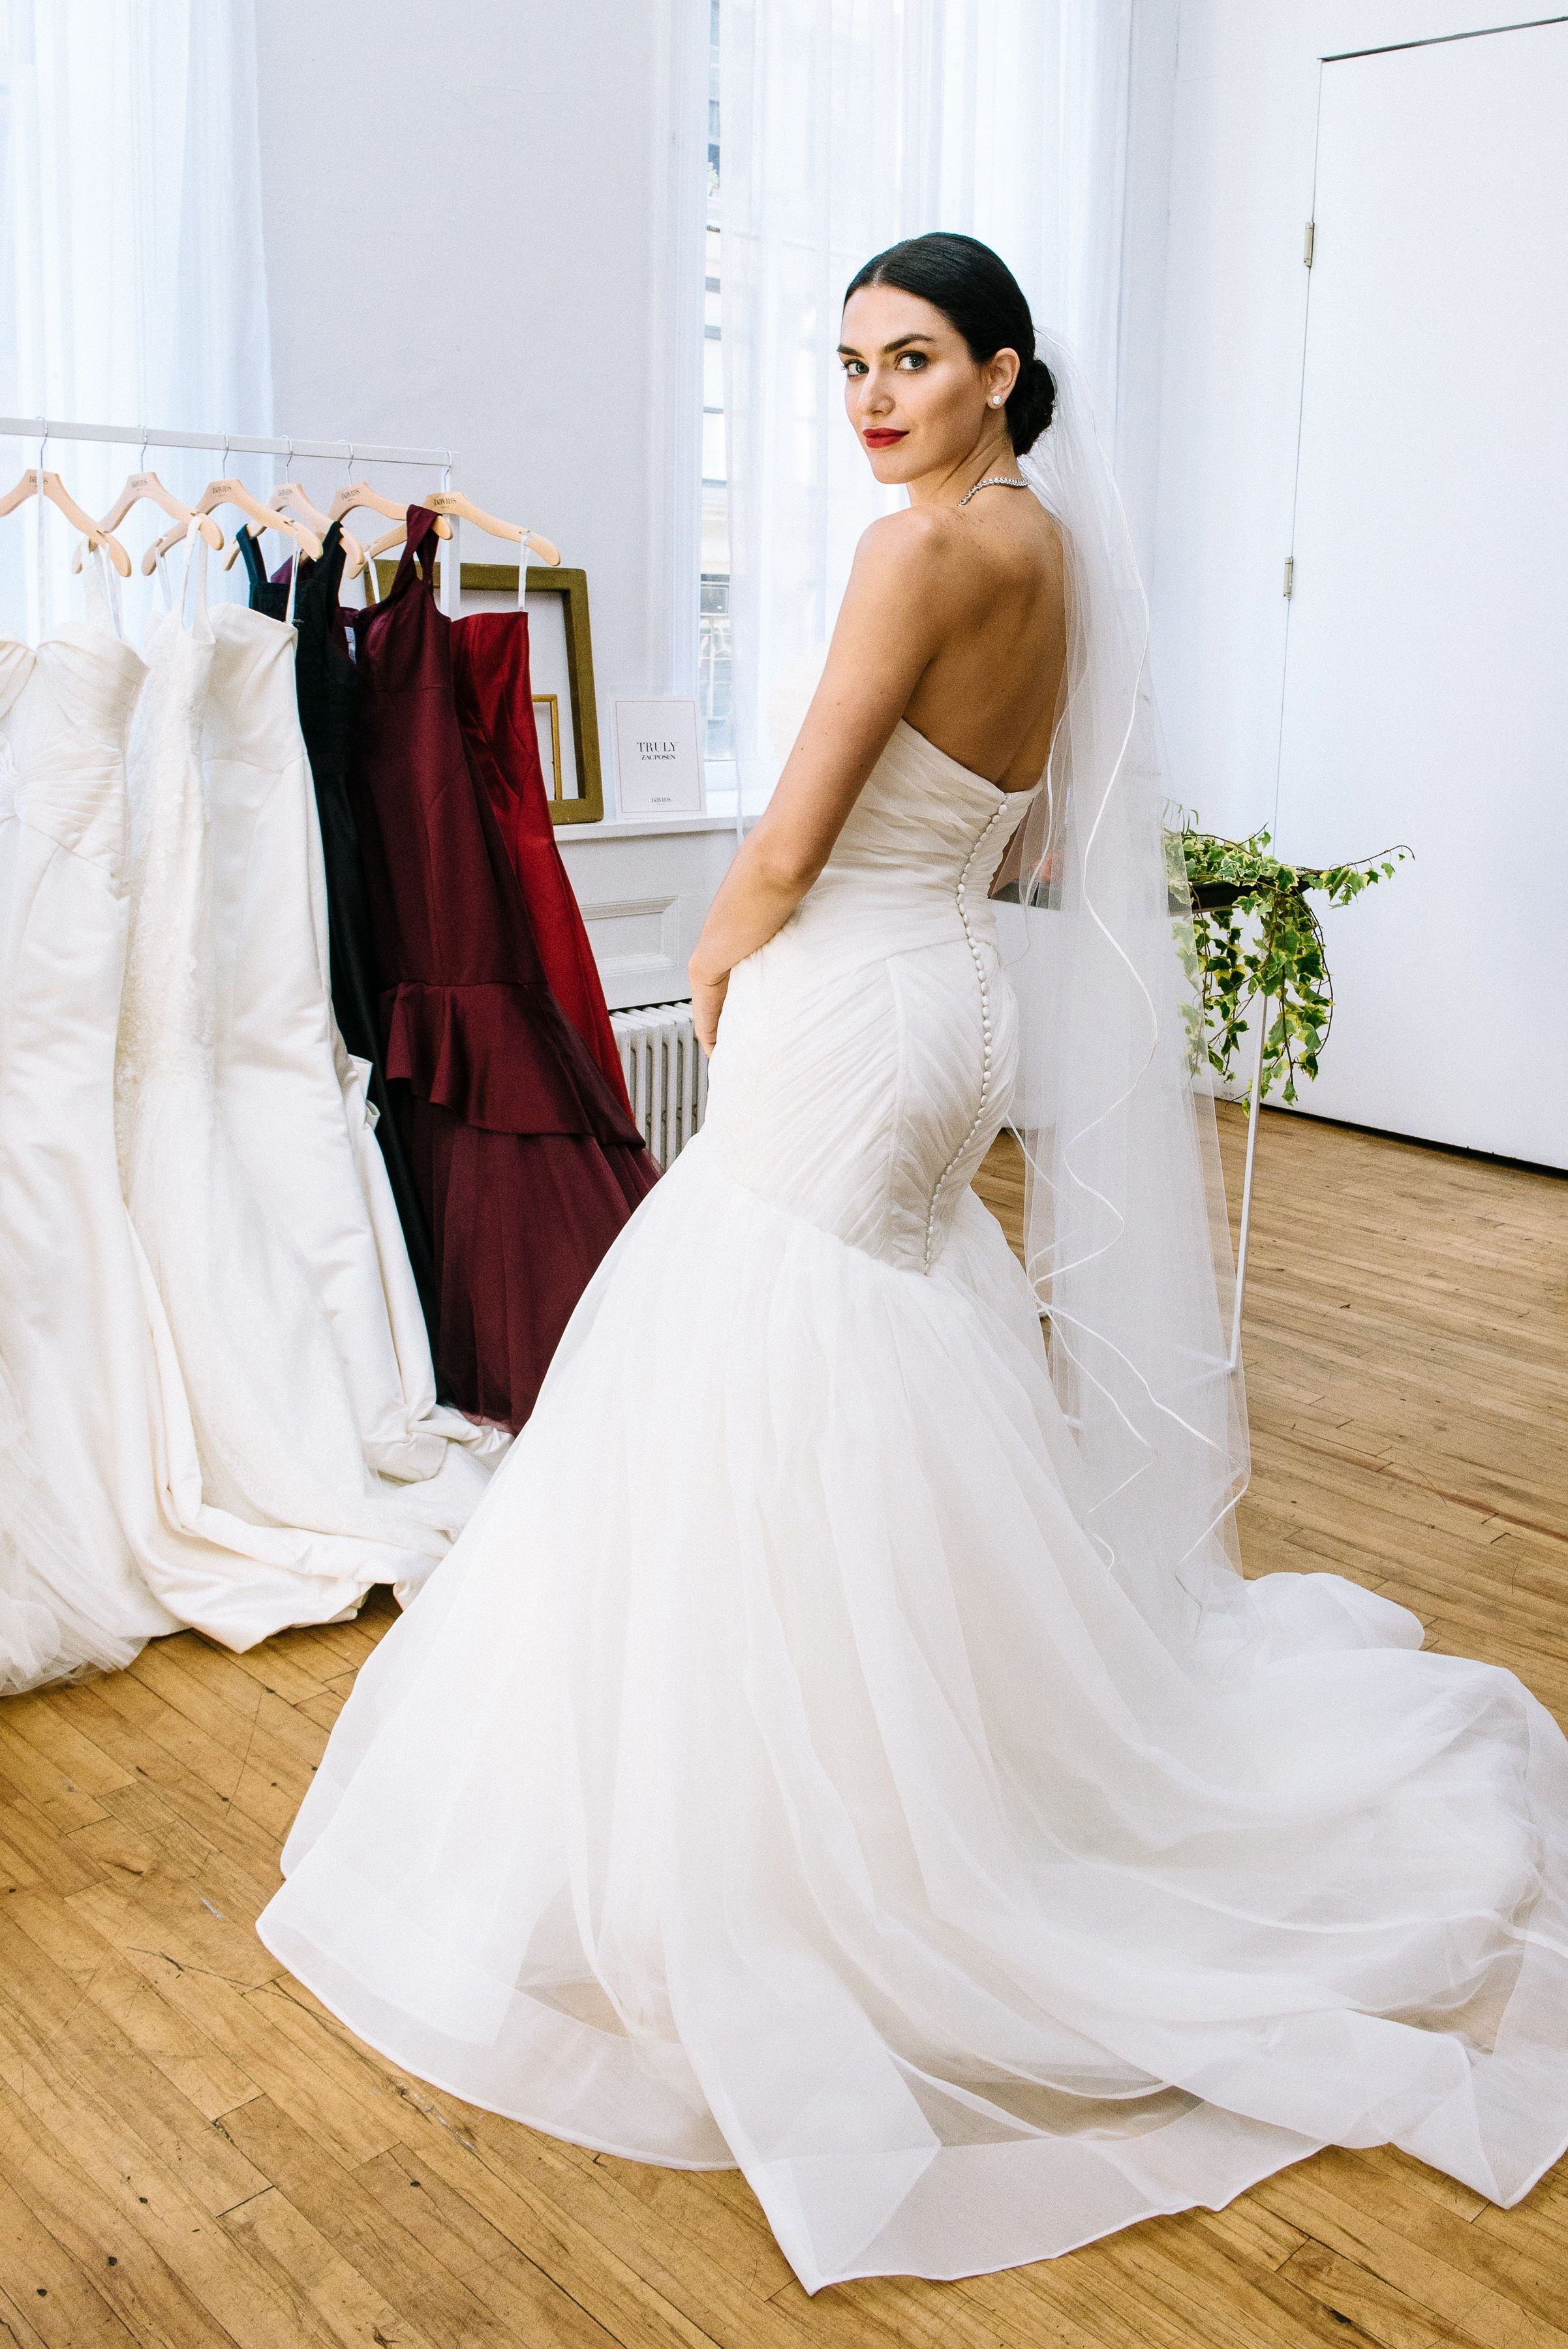 A Mermaid Wedding Dress Hugs Your Curves In All The Right Areas For A Wedding Look That Is Wedding Dress Organza Wedding Dresses Davids Bridal Wedding Dresses [ 3600 x 2403 Pixel ]